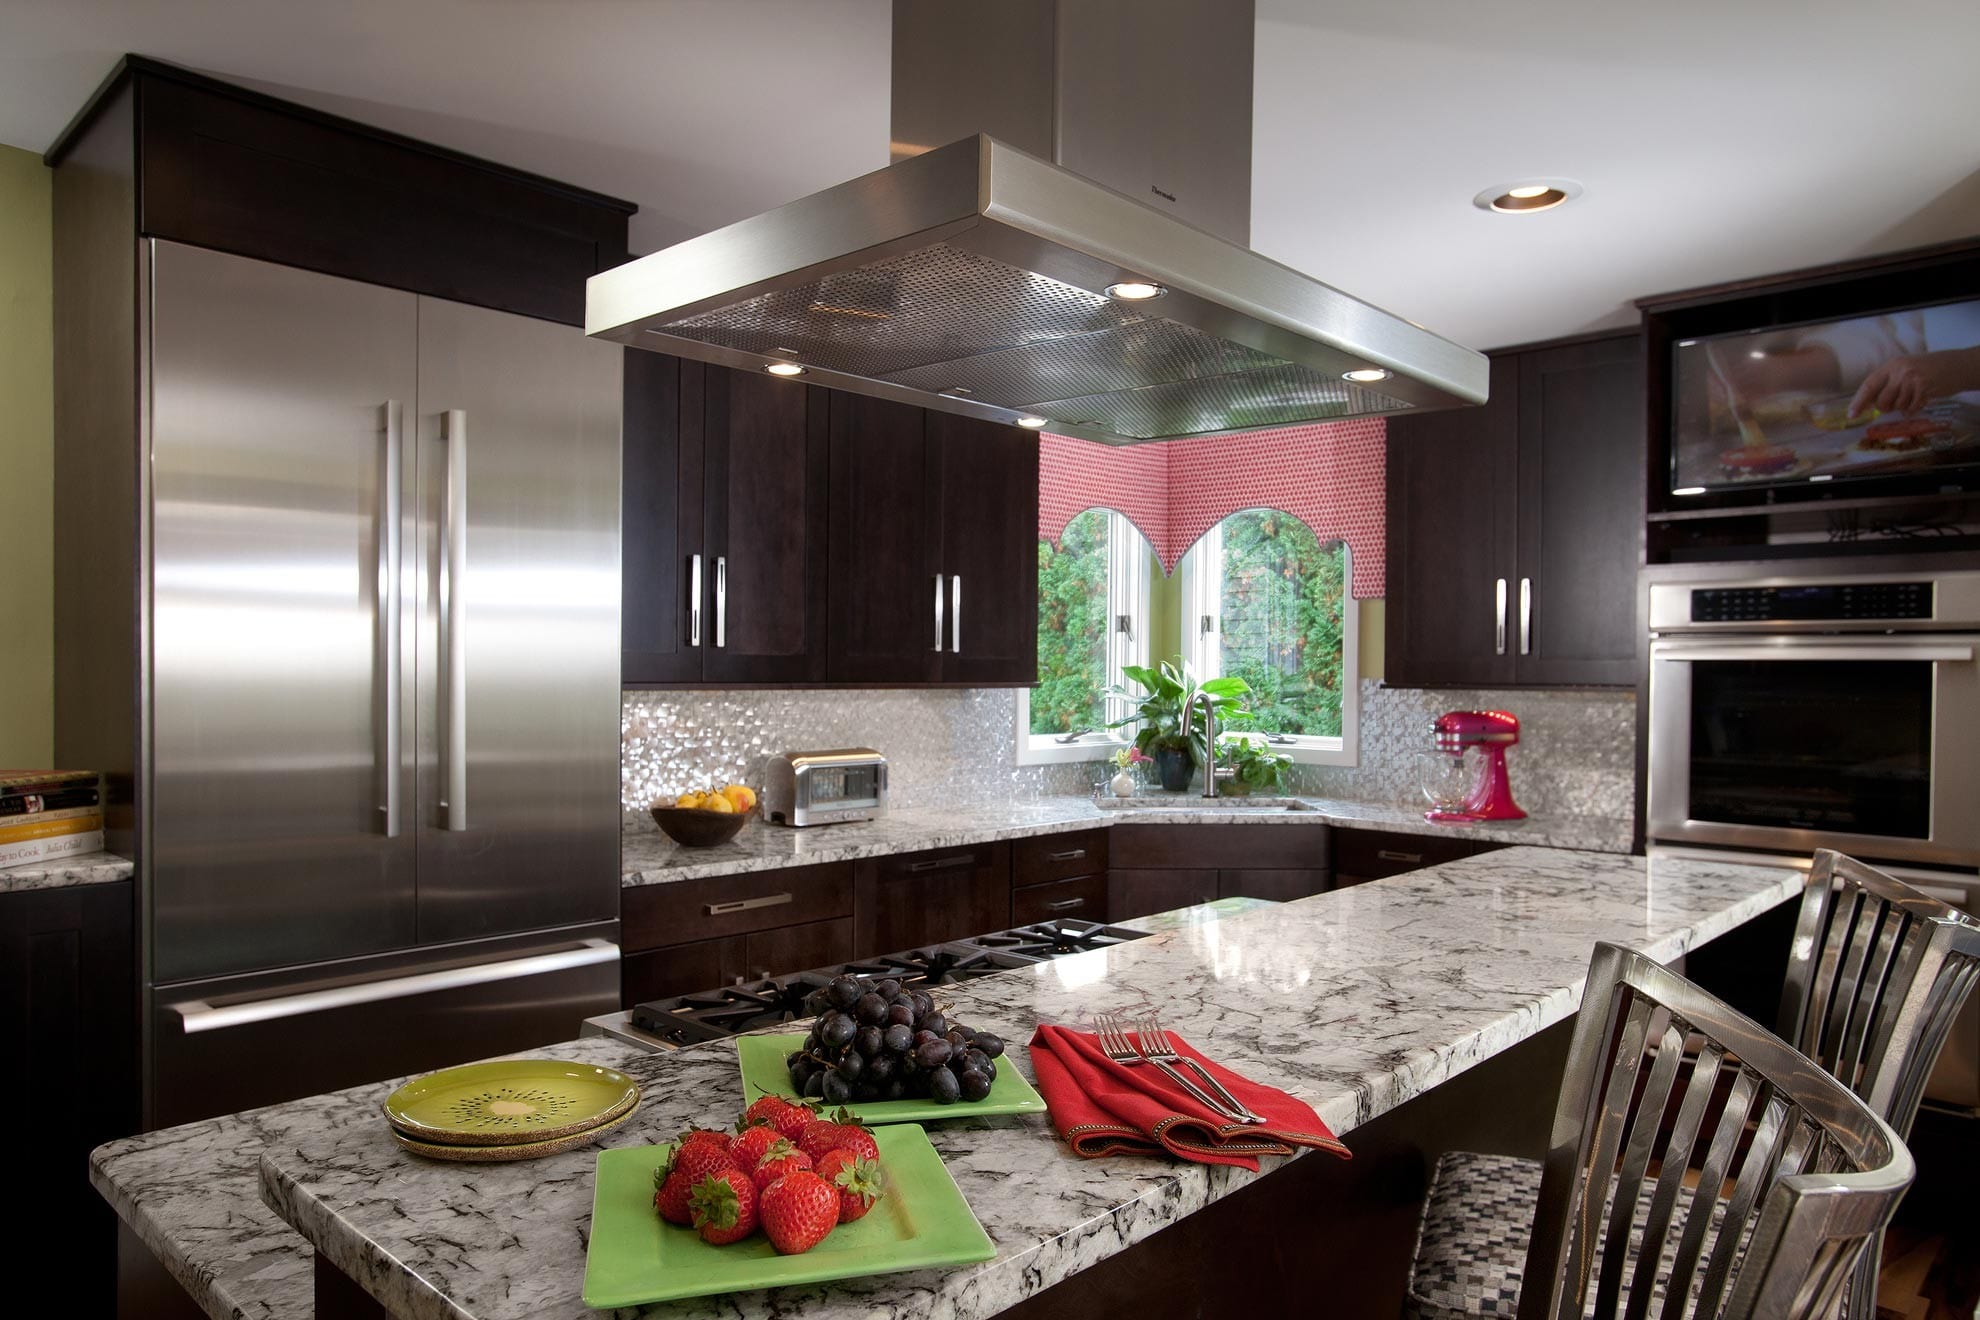 harrisburg pa contemporary kitchen renovation kitchen remodeling york pa Harrisburg PA Contemporary Kitchen Remodel Mother Hubbards Custom Cabinetry